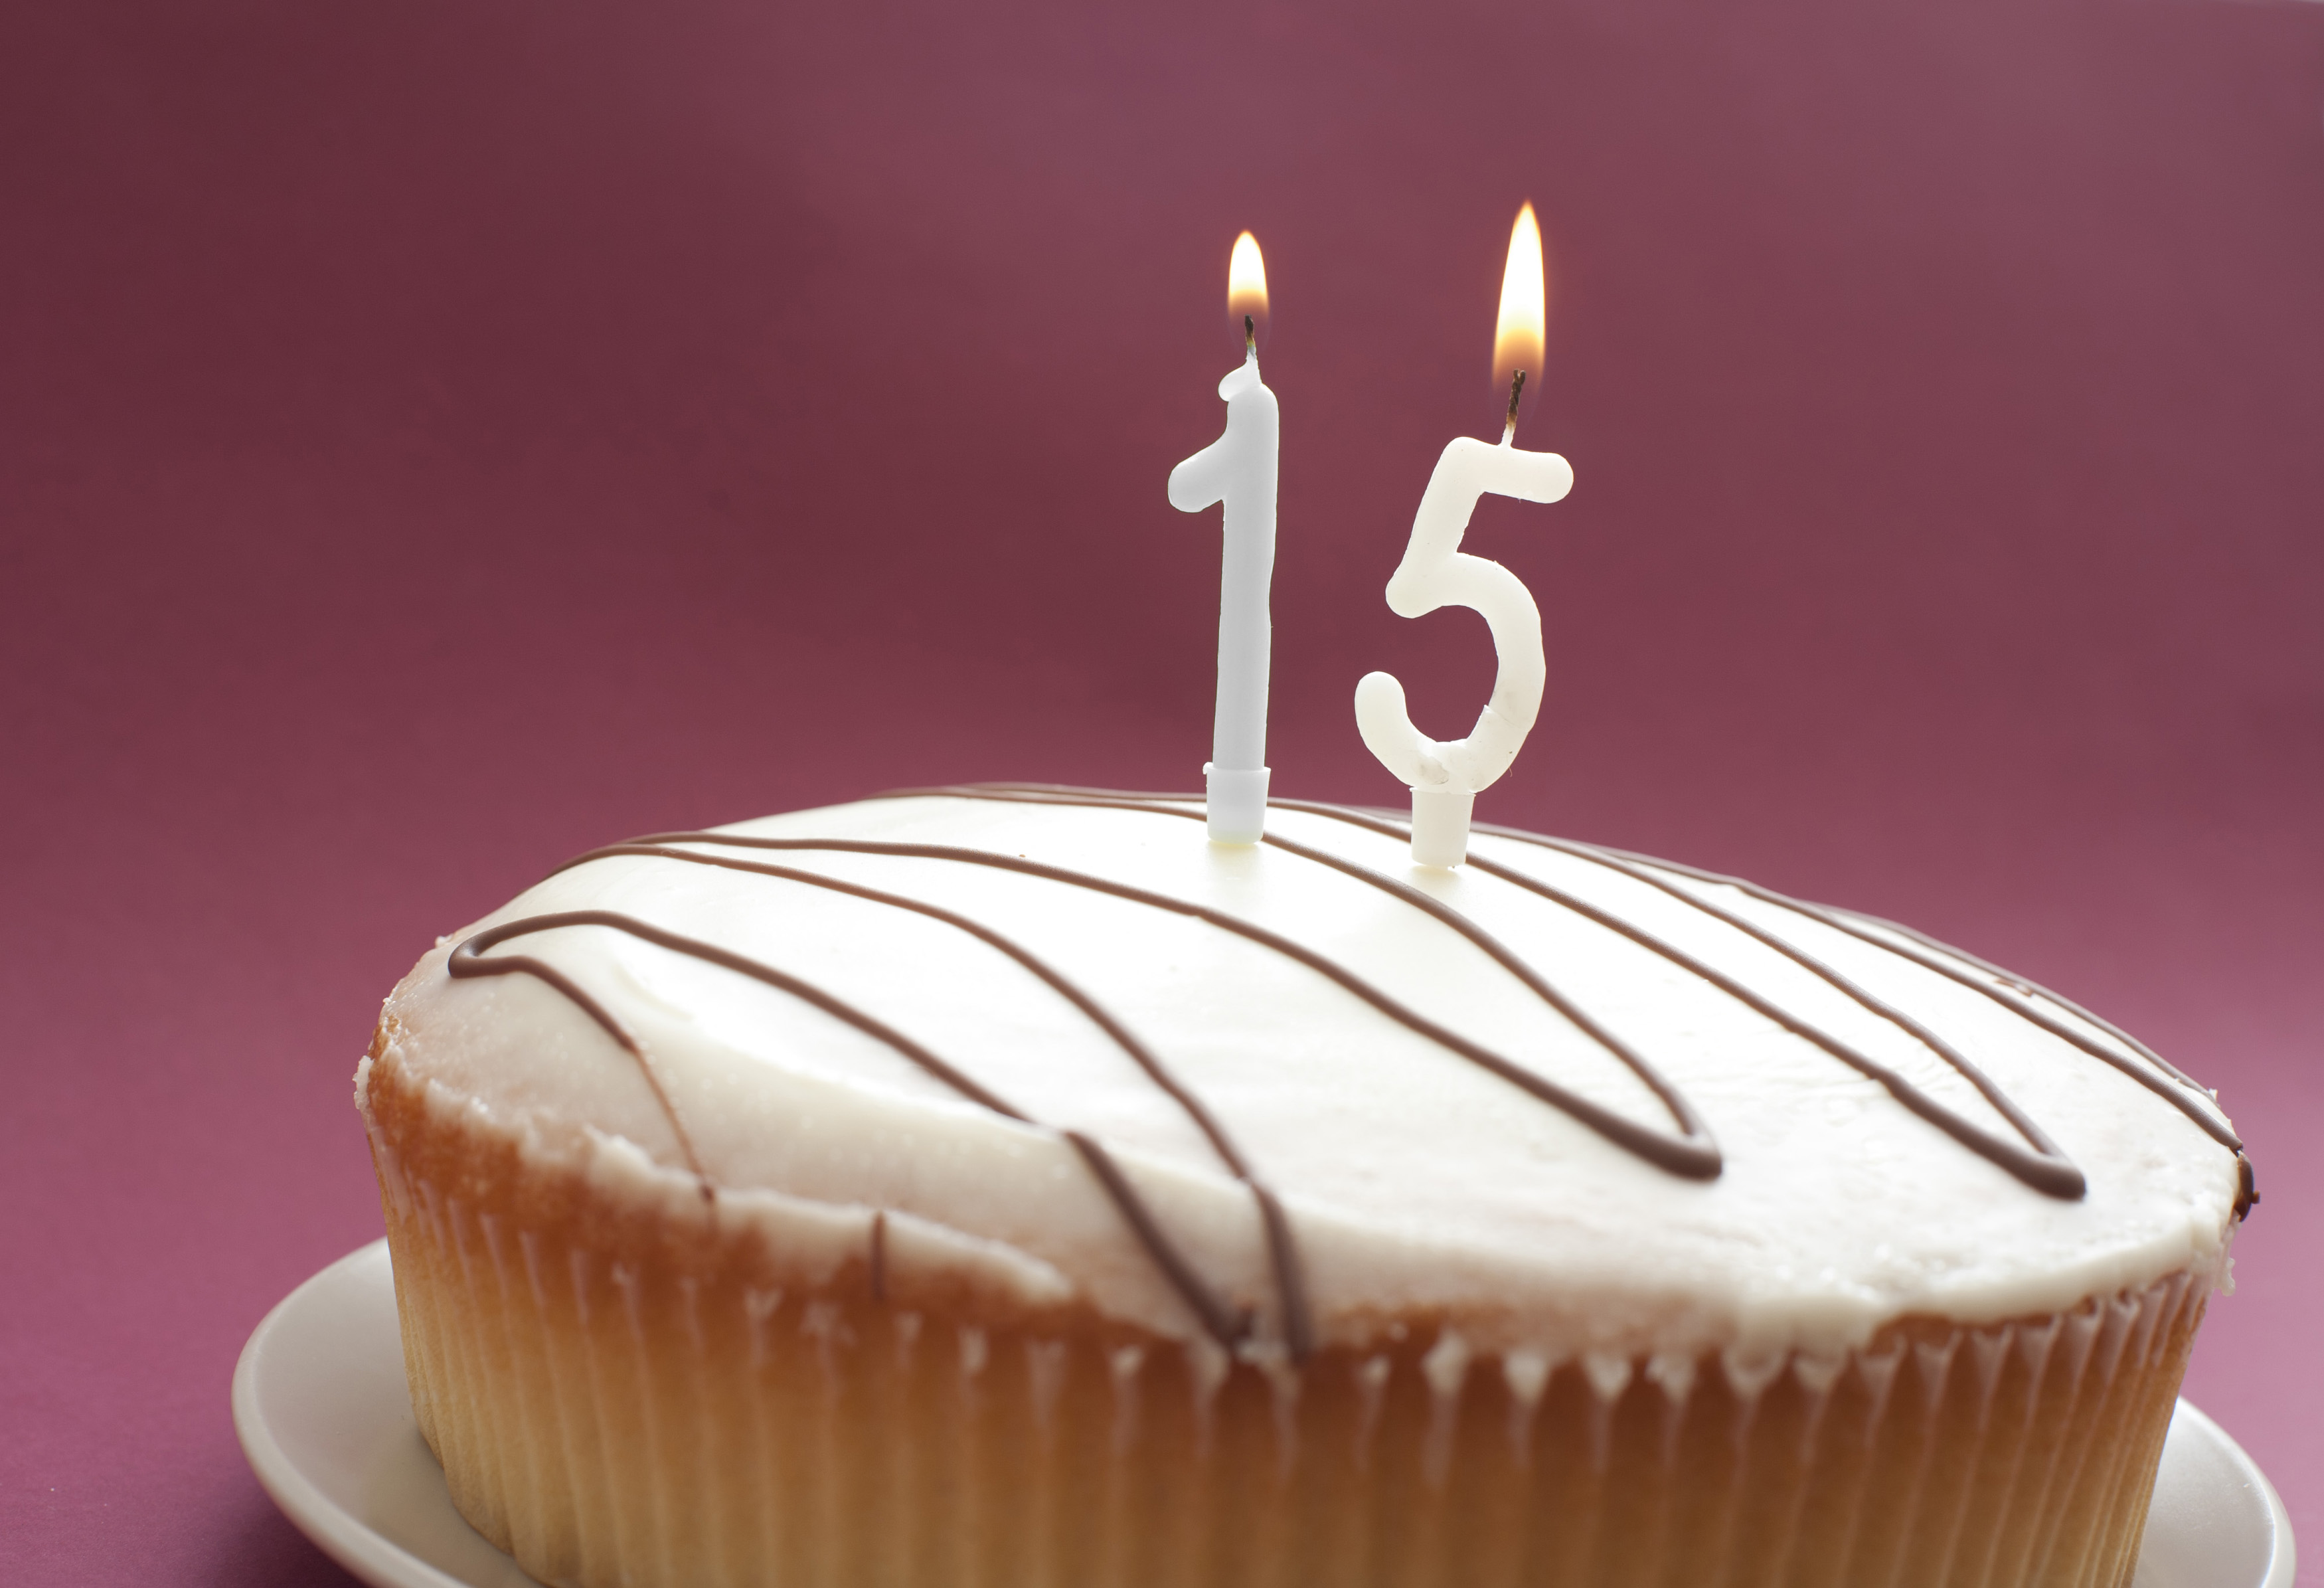 Iced 15th Birthday Cake With Burning Number Candles Over A Pink Background Copyspace For Your